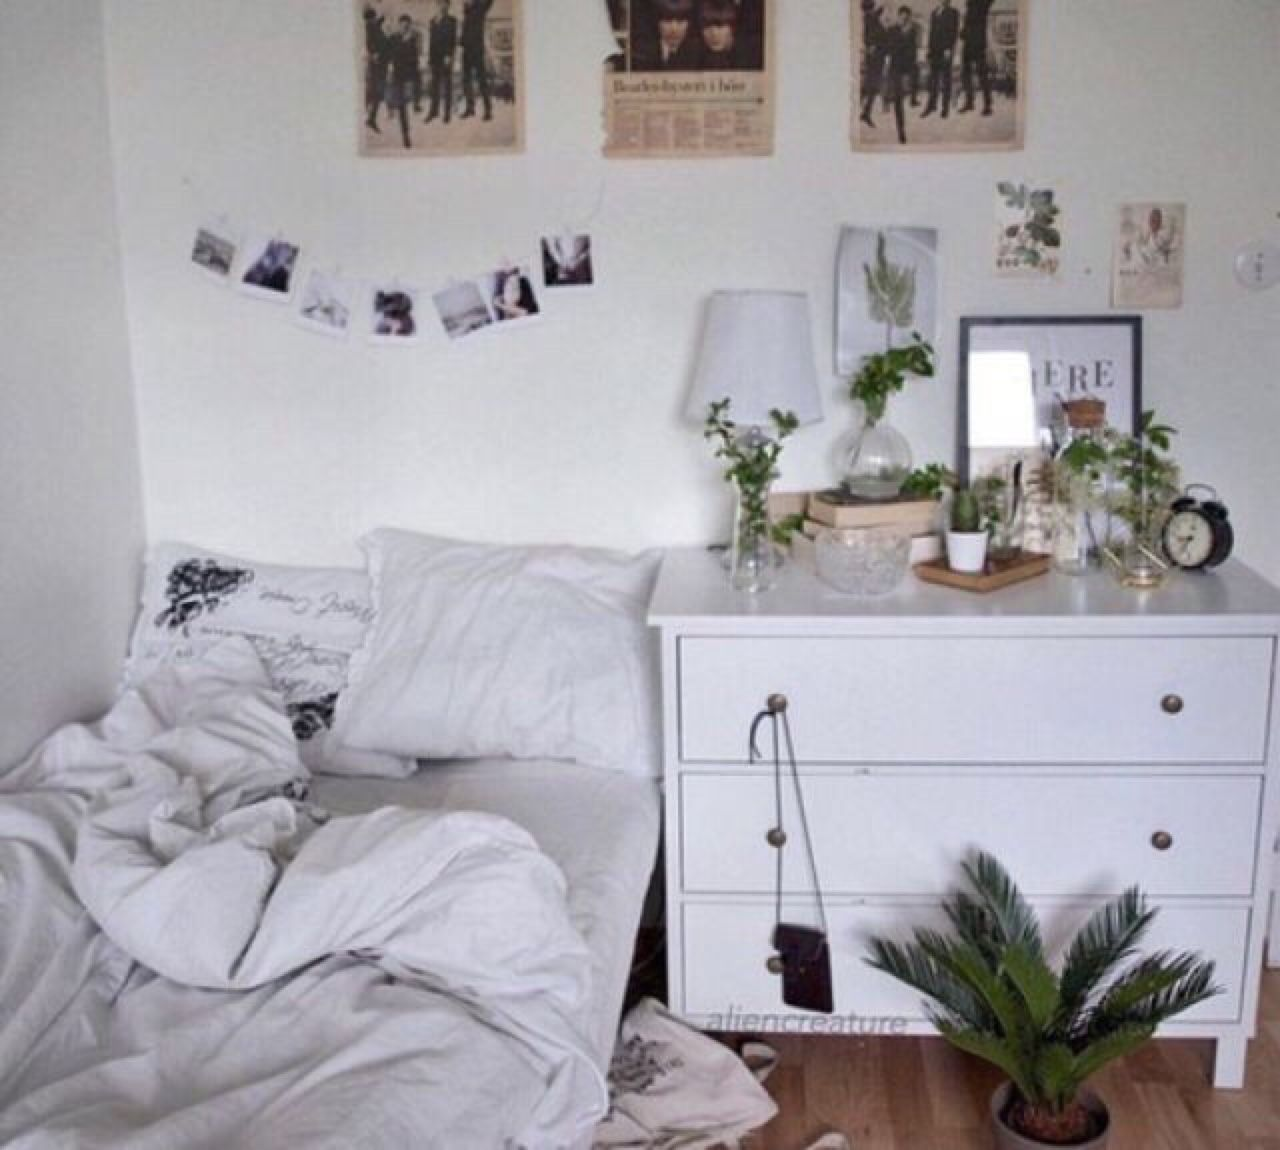 White bedroom ideas tumblr - Aesthetic Tumblr Grunge Room Google Search